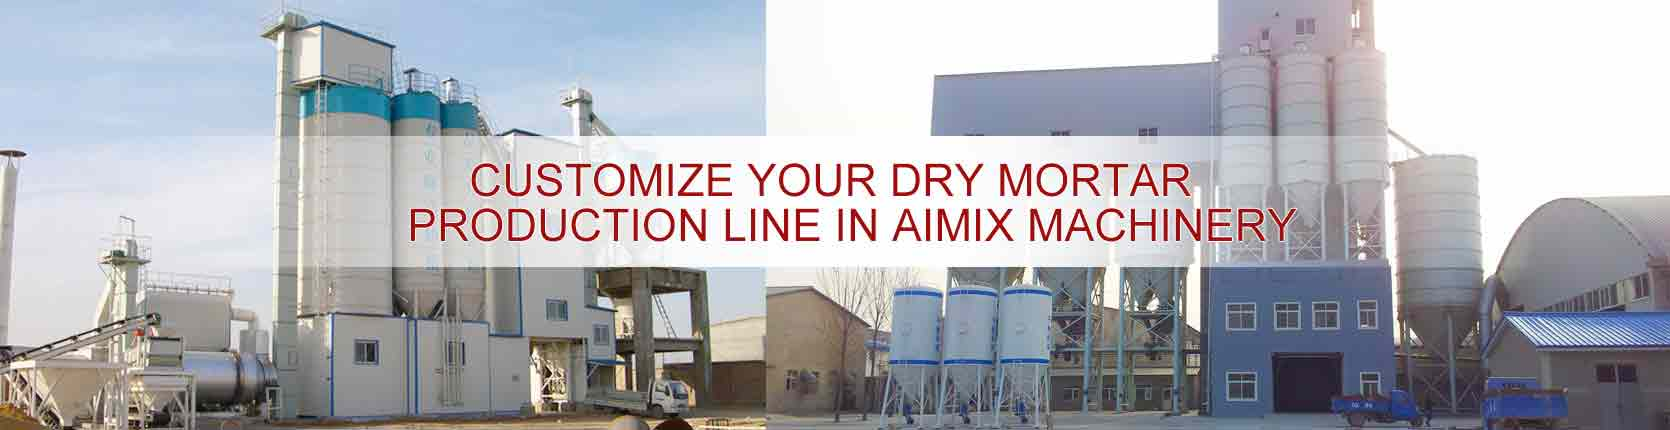 Ready Mixed Dry Mortar Production Equipment for Sale in AIMIX